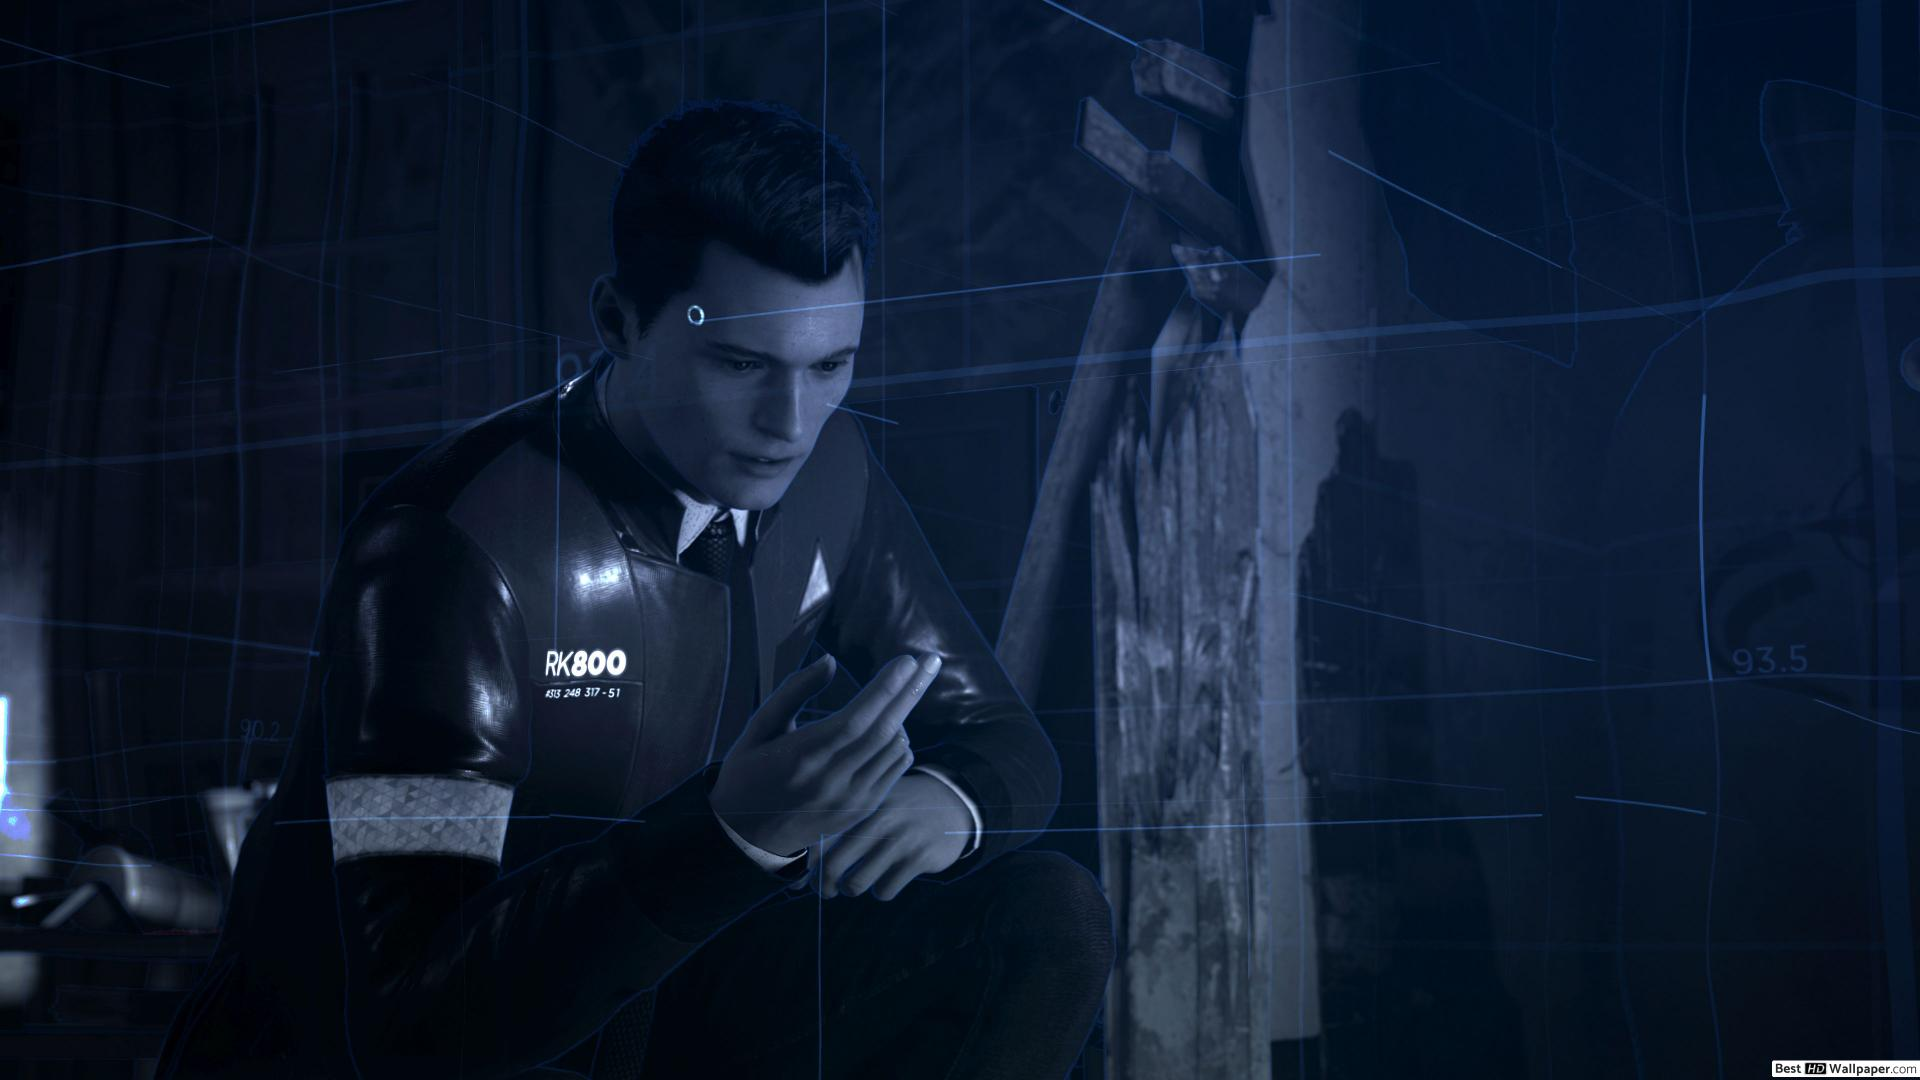 Detroit Become Human Wallpaper 1920x1080 Posted By John Cunningham